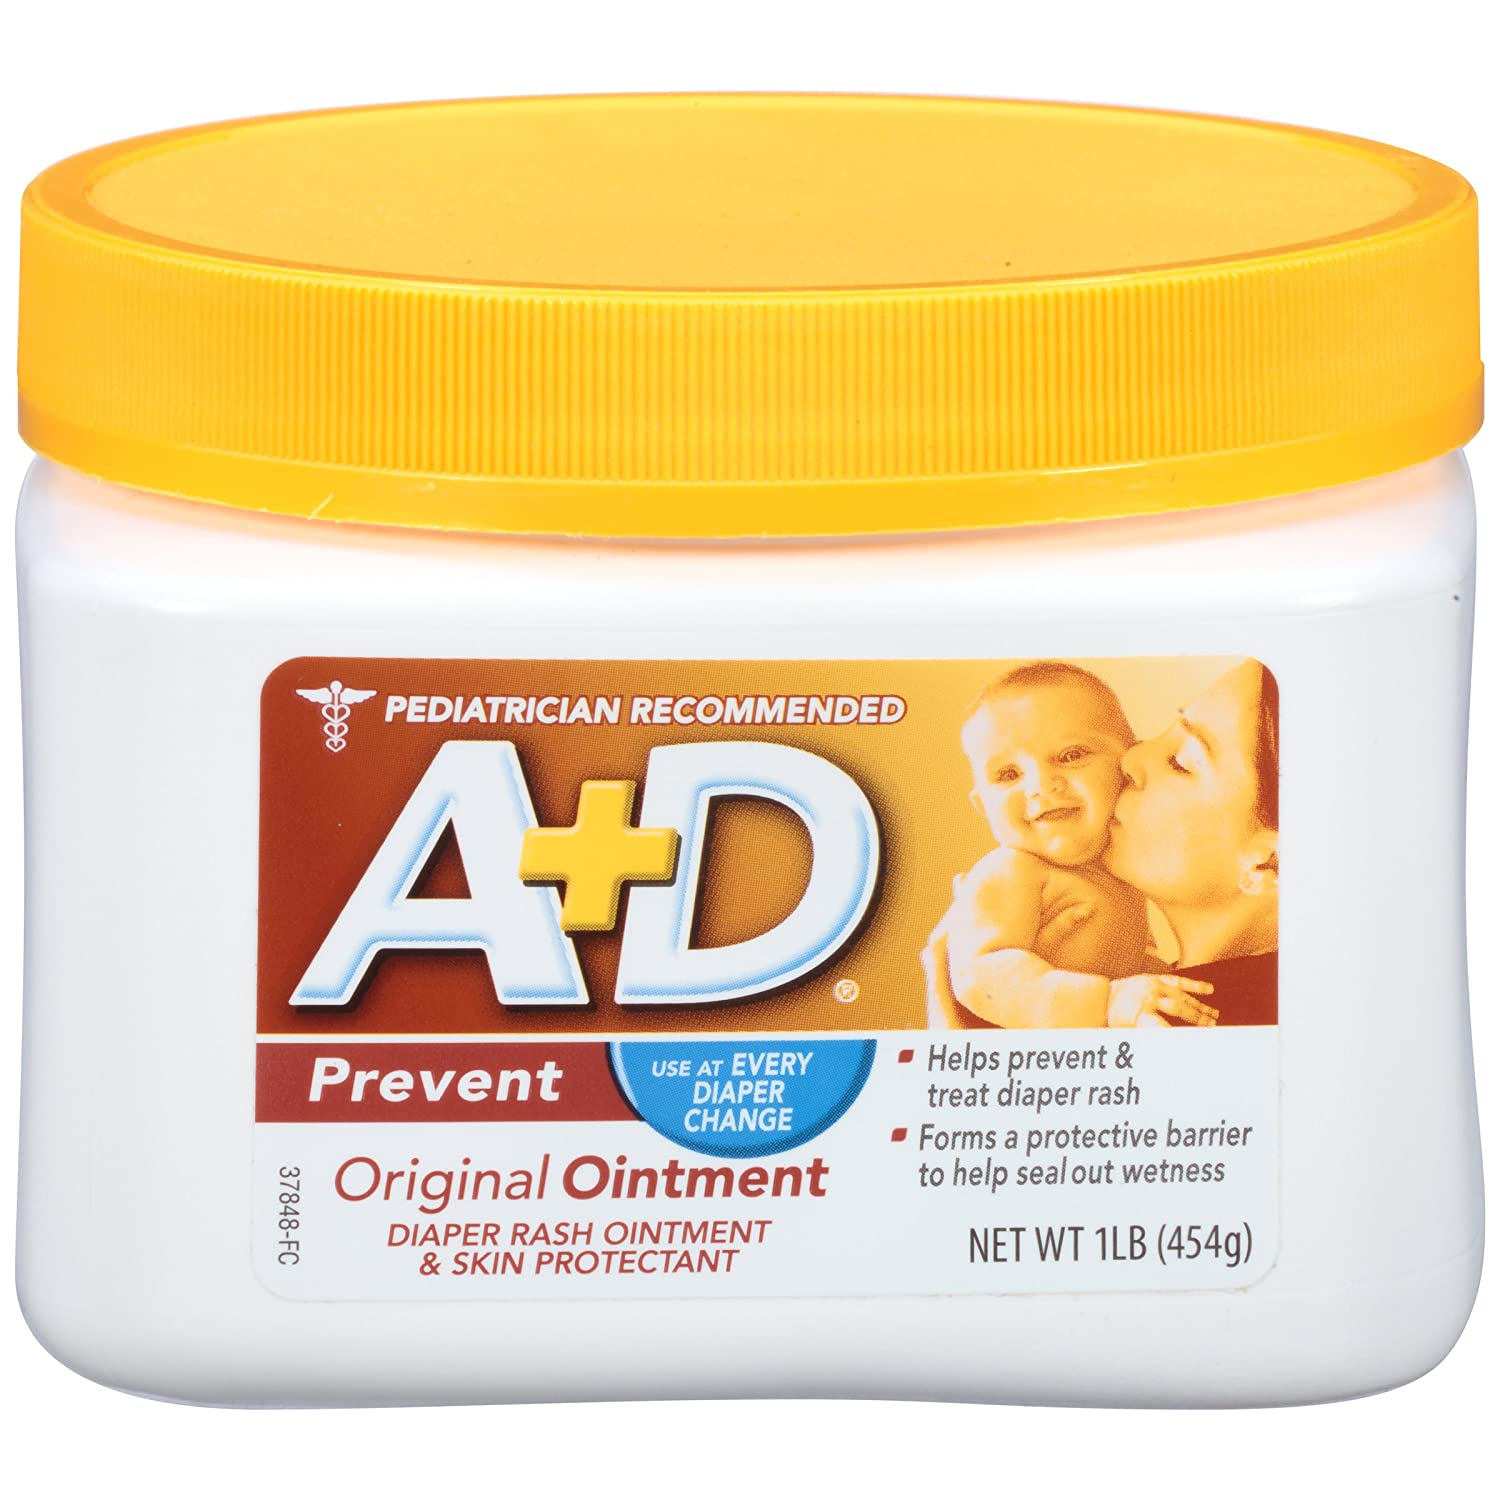 images Vitamin A D, Topical Reviews